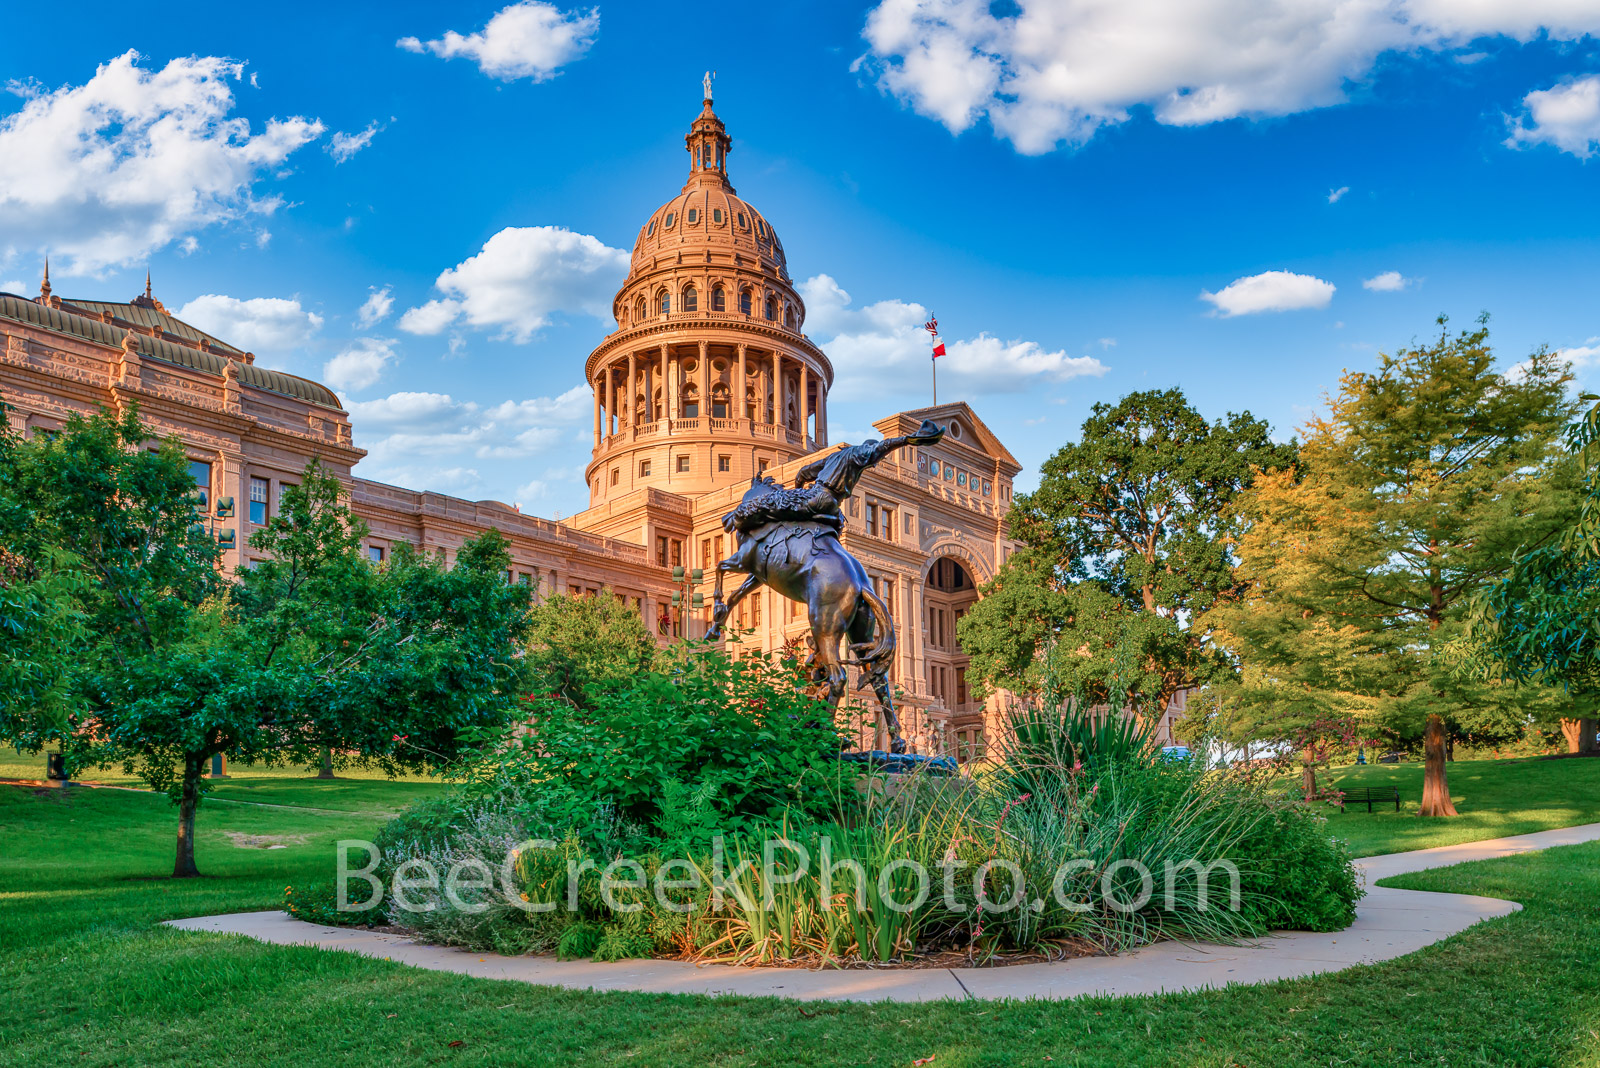 Texas State Capitol with Cowboy Statue - This is the Texas Cowboy Monument in front of the State Capital in Austin Texas.  The...